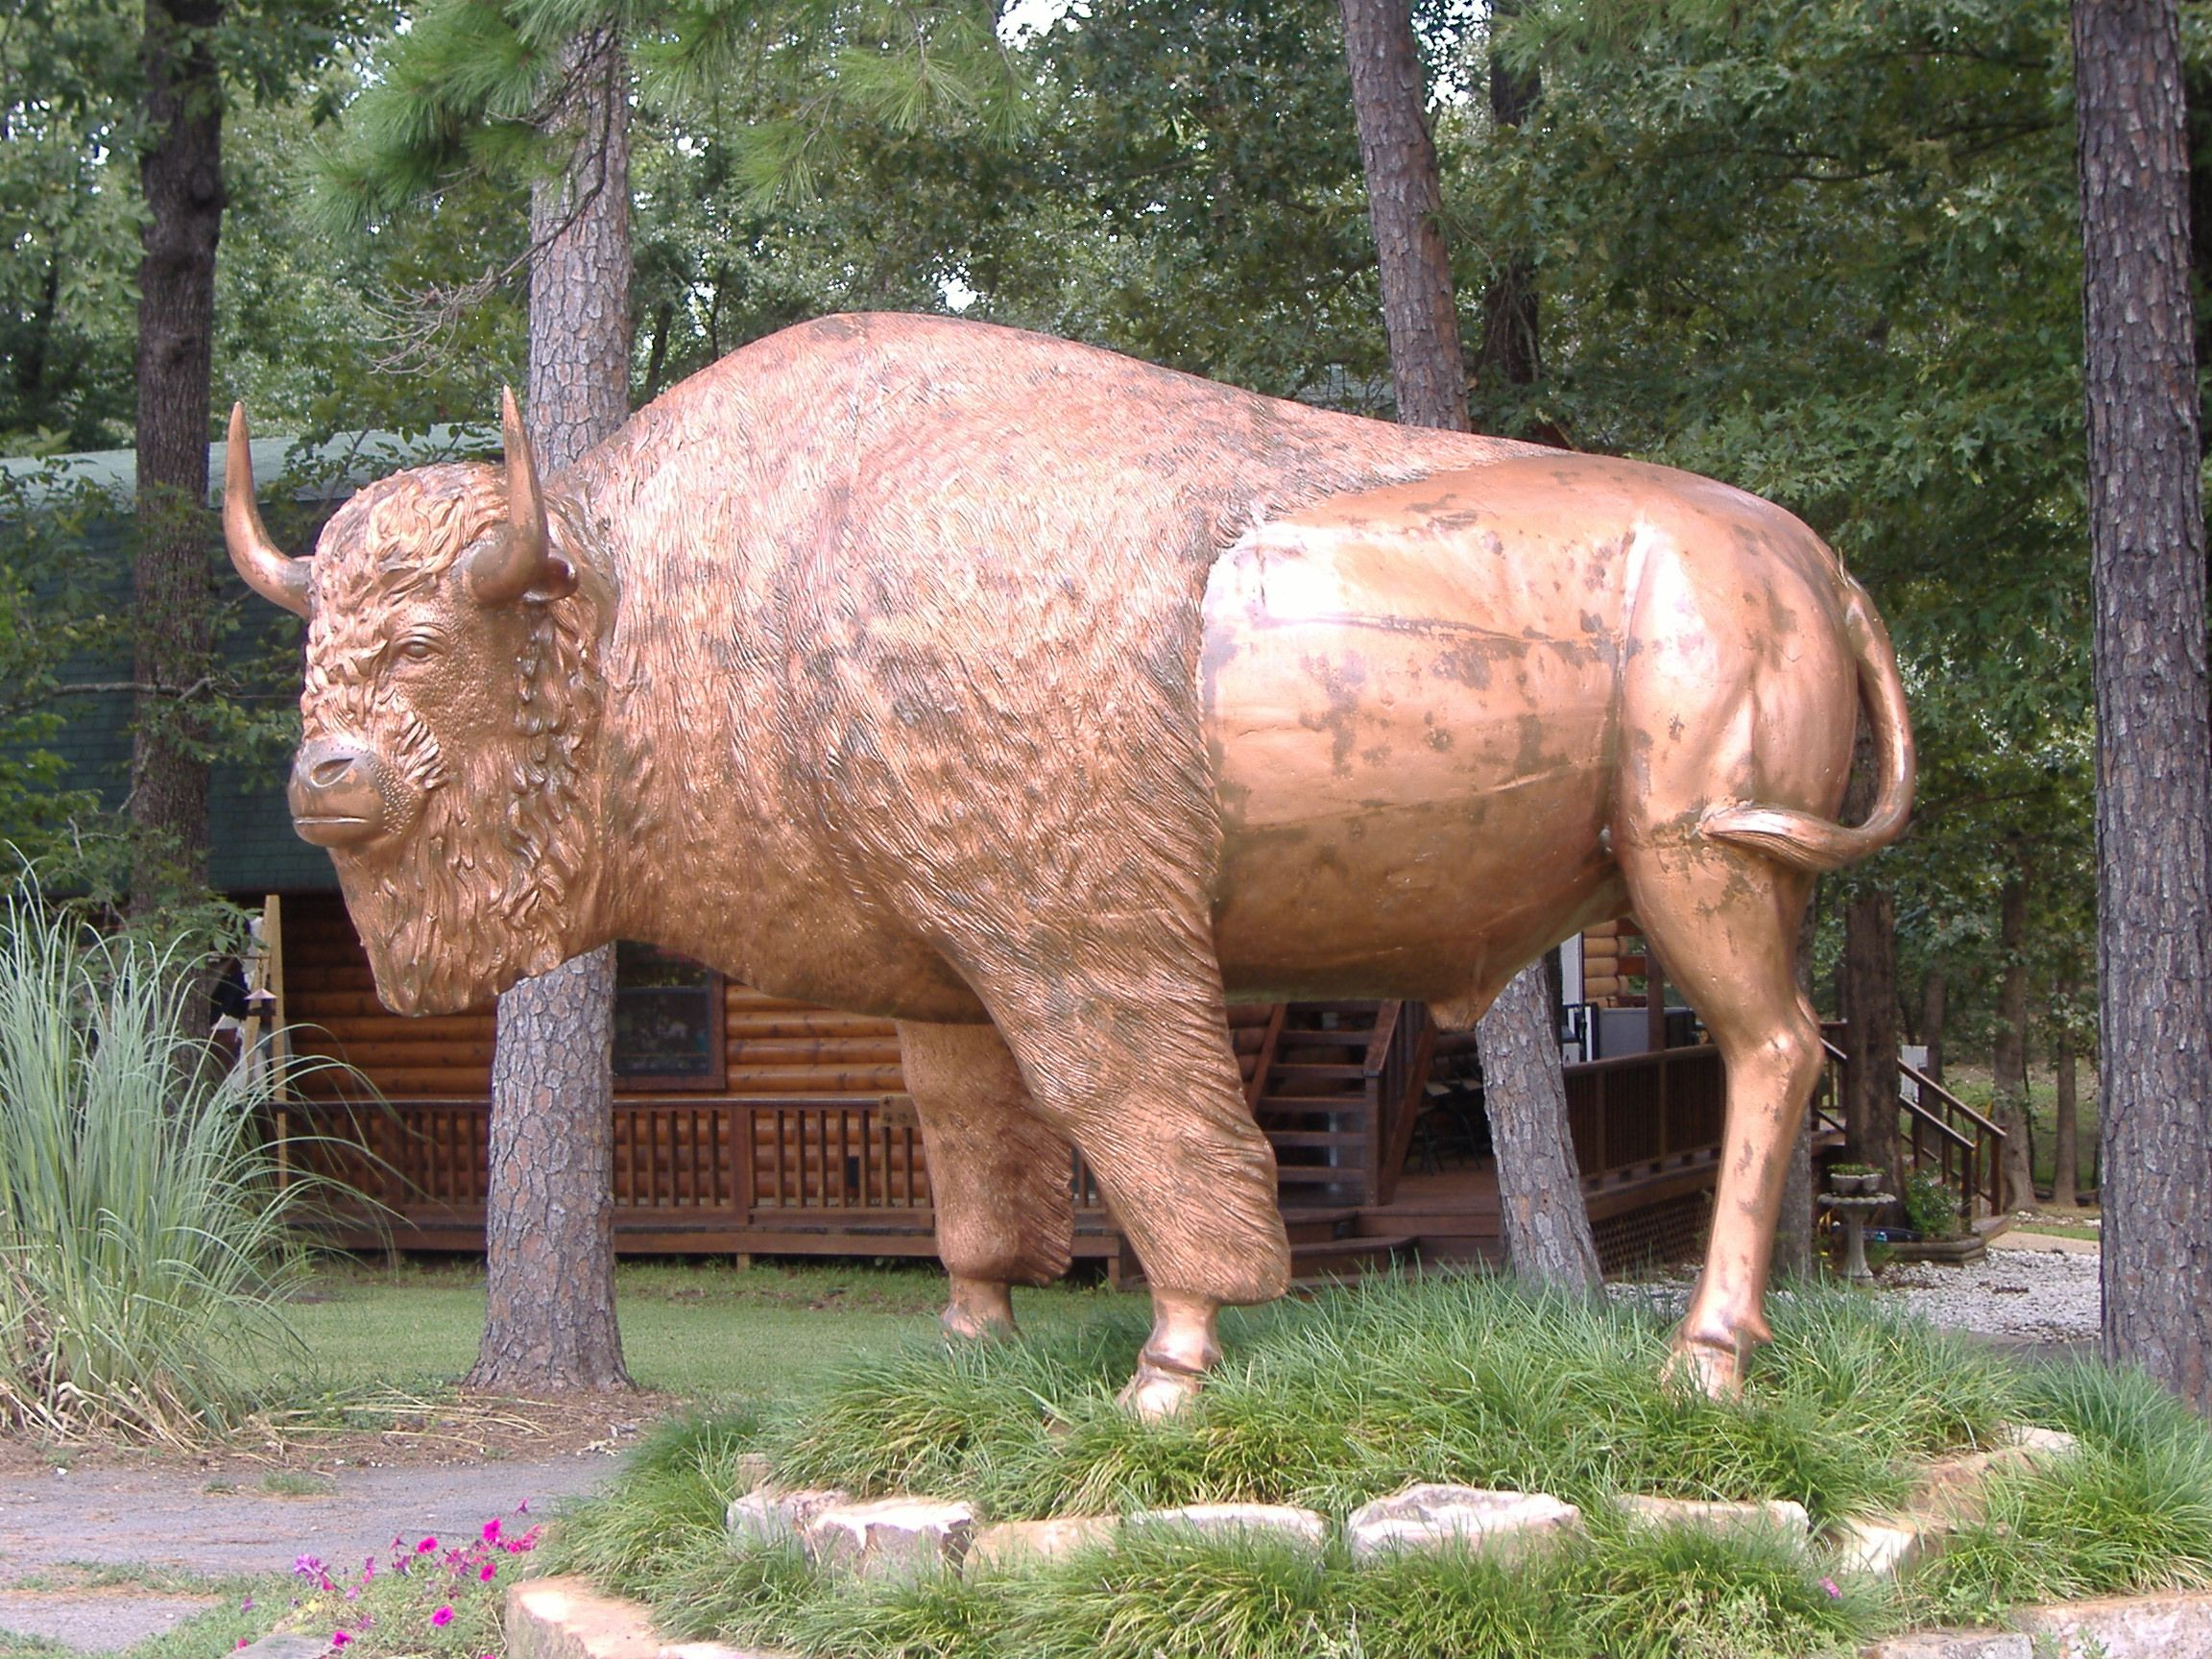 Beavers bend wildlife museum travel and tourism